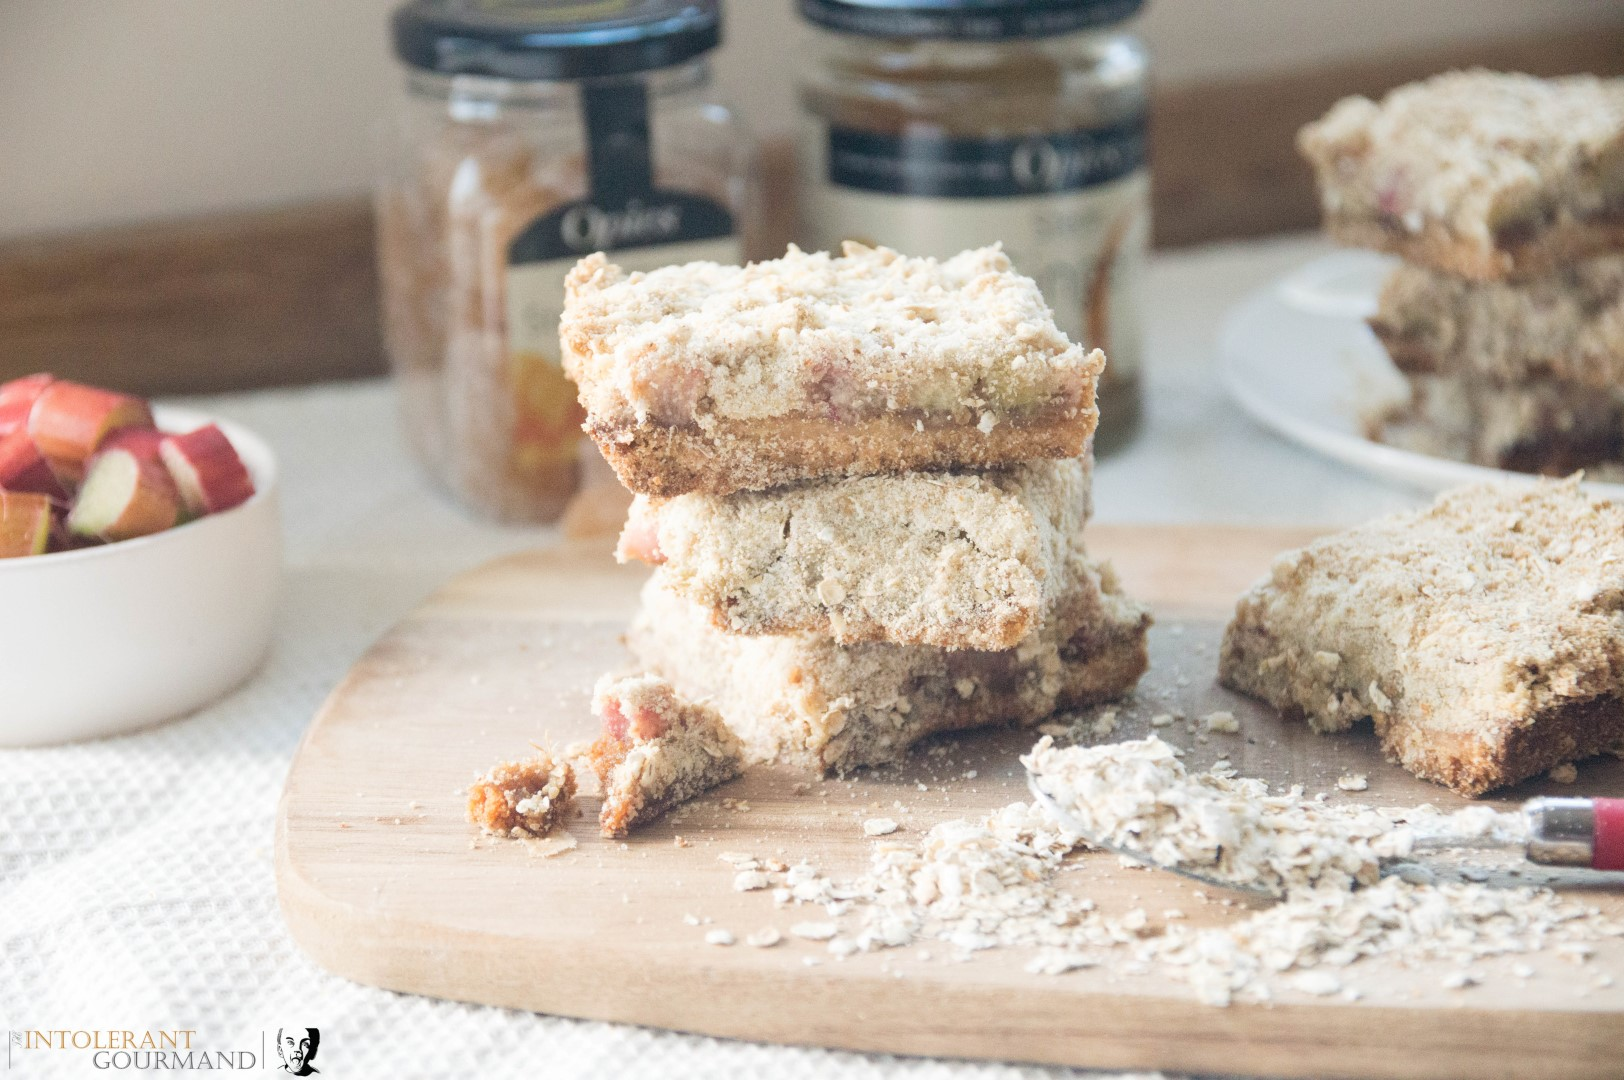 Rhubarb Ginger Crumble Bars - these delicious crumble bars are dairy and gluten free, and super simple to make! www.intolerantgourmand.com